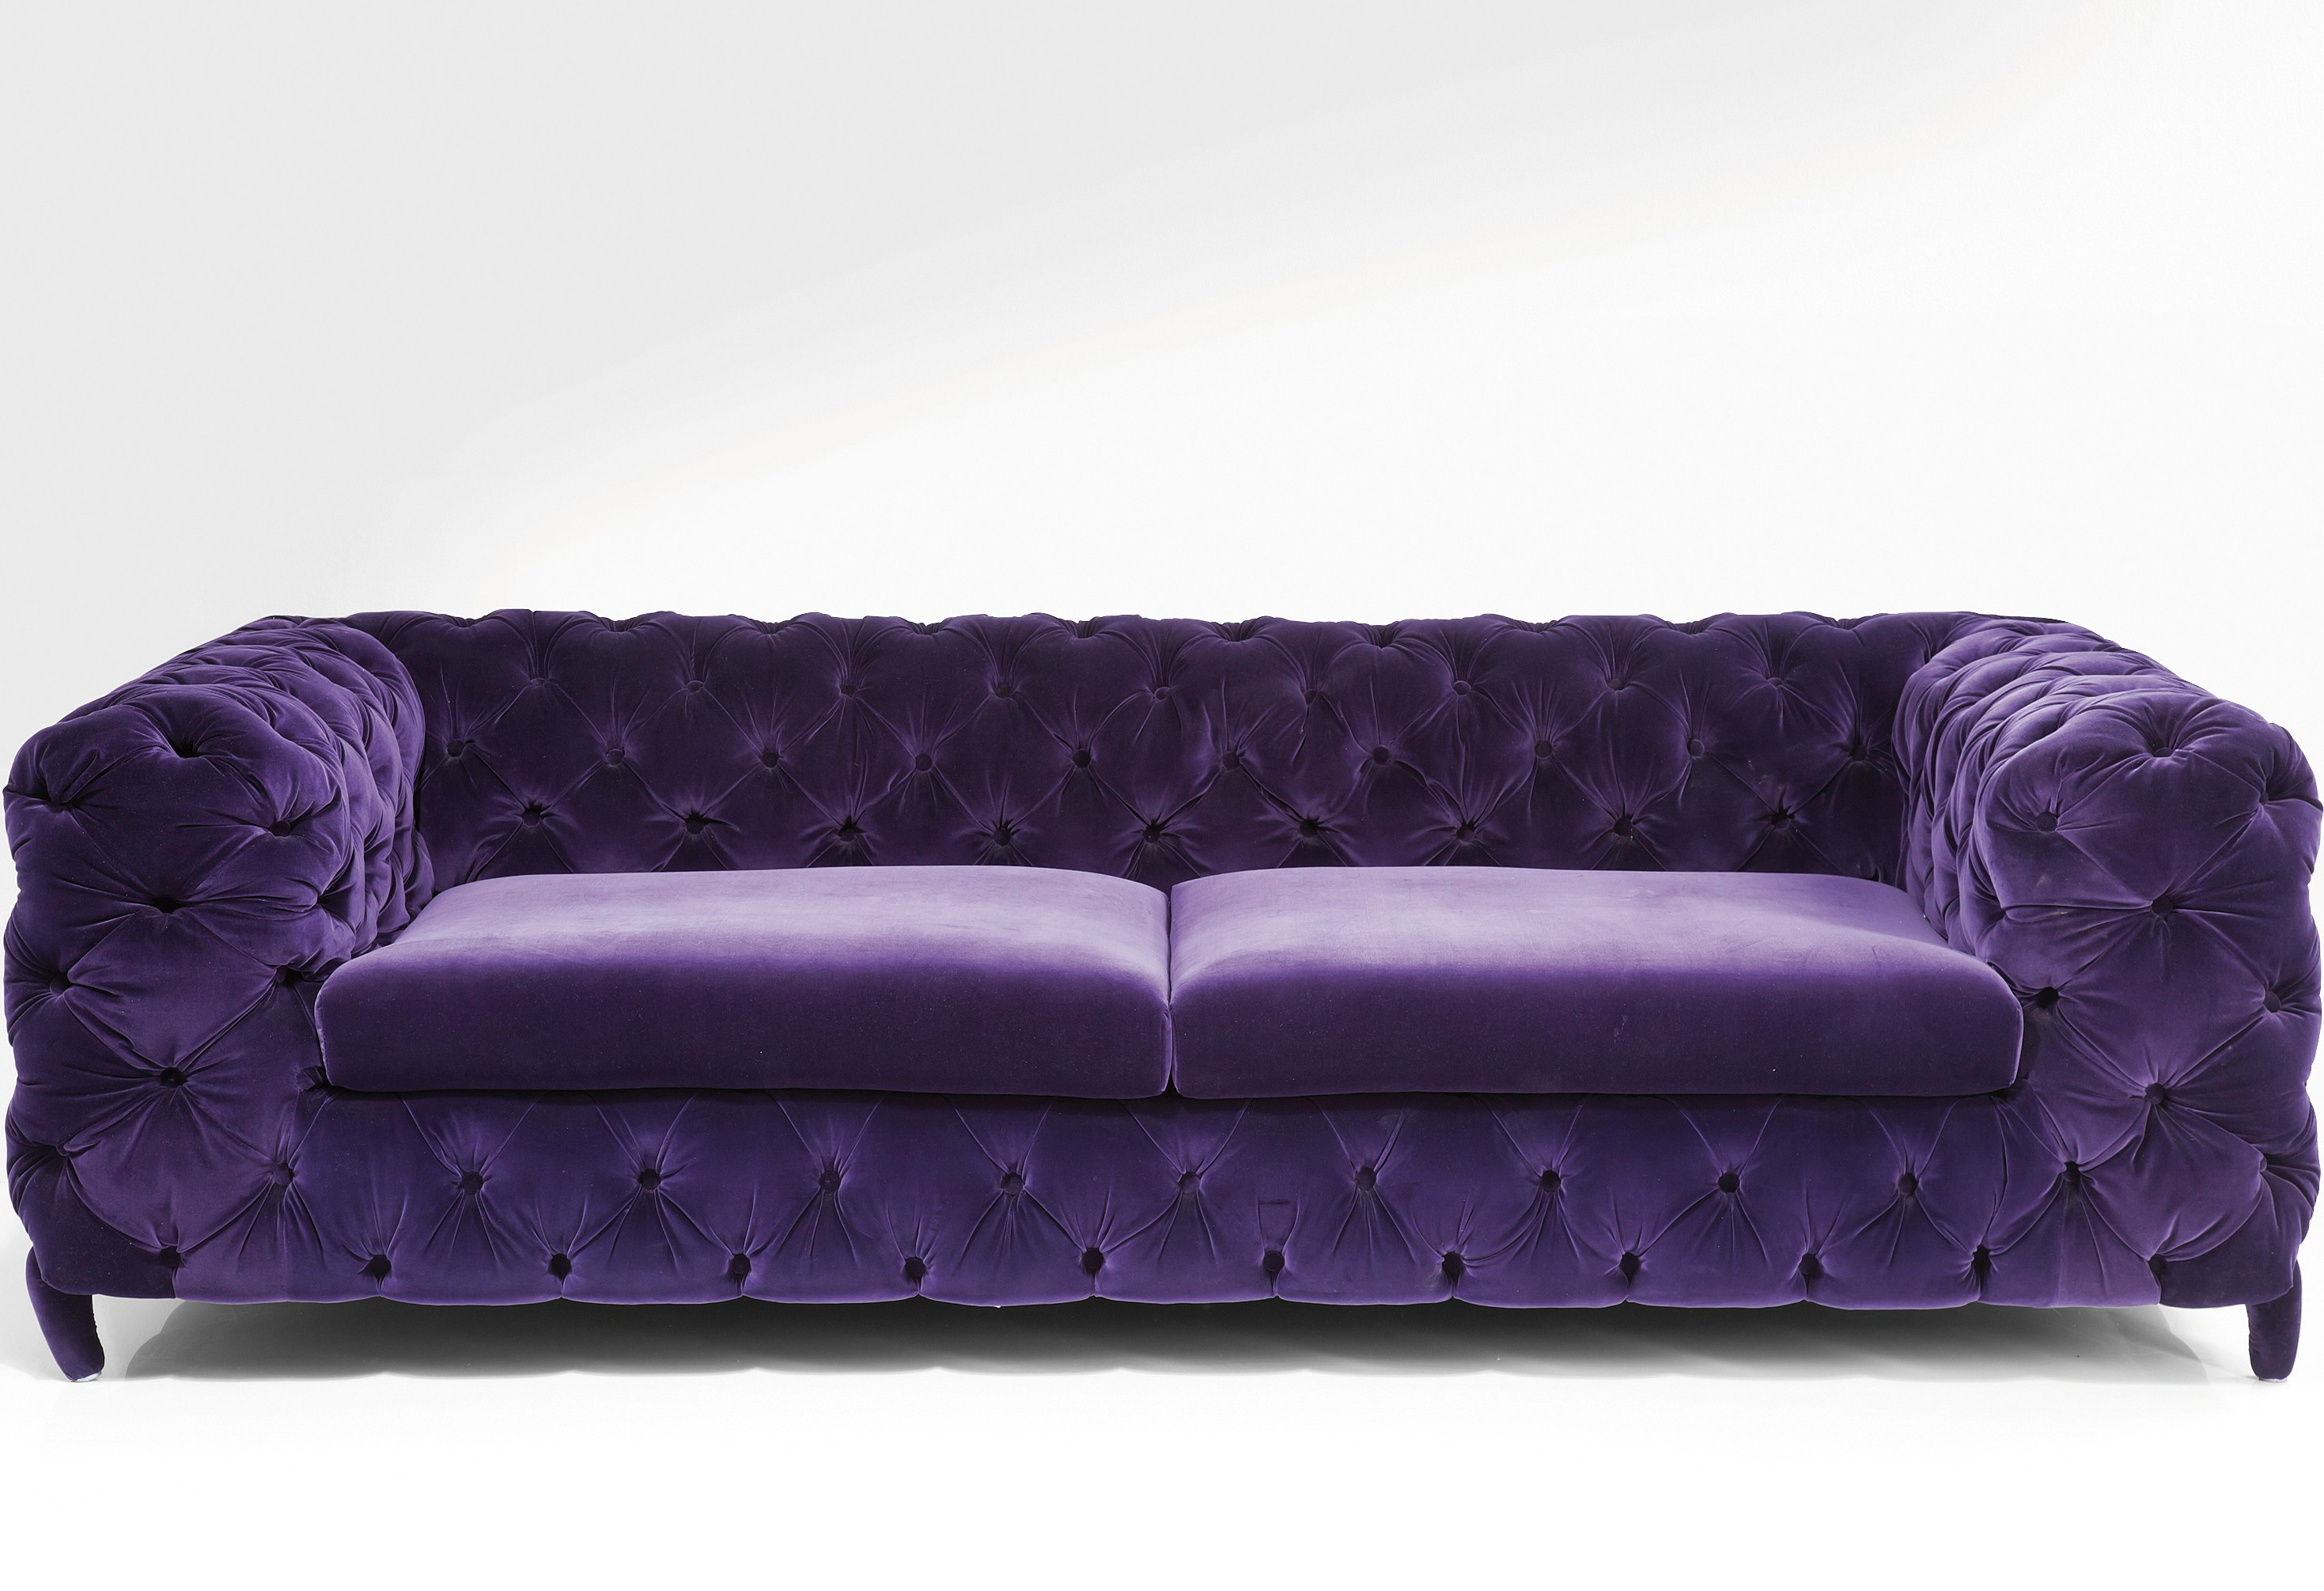 perfect sofa velvet fabric 94 for your sofa table ideas. Black Bedroom Furniture Sets. Home Design Ideas